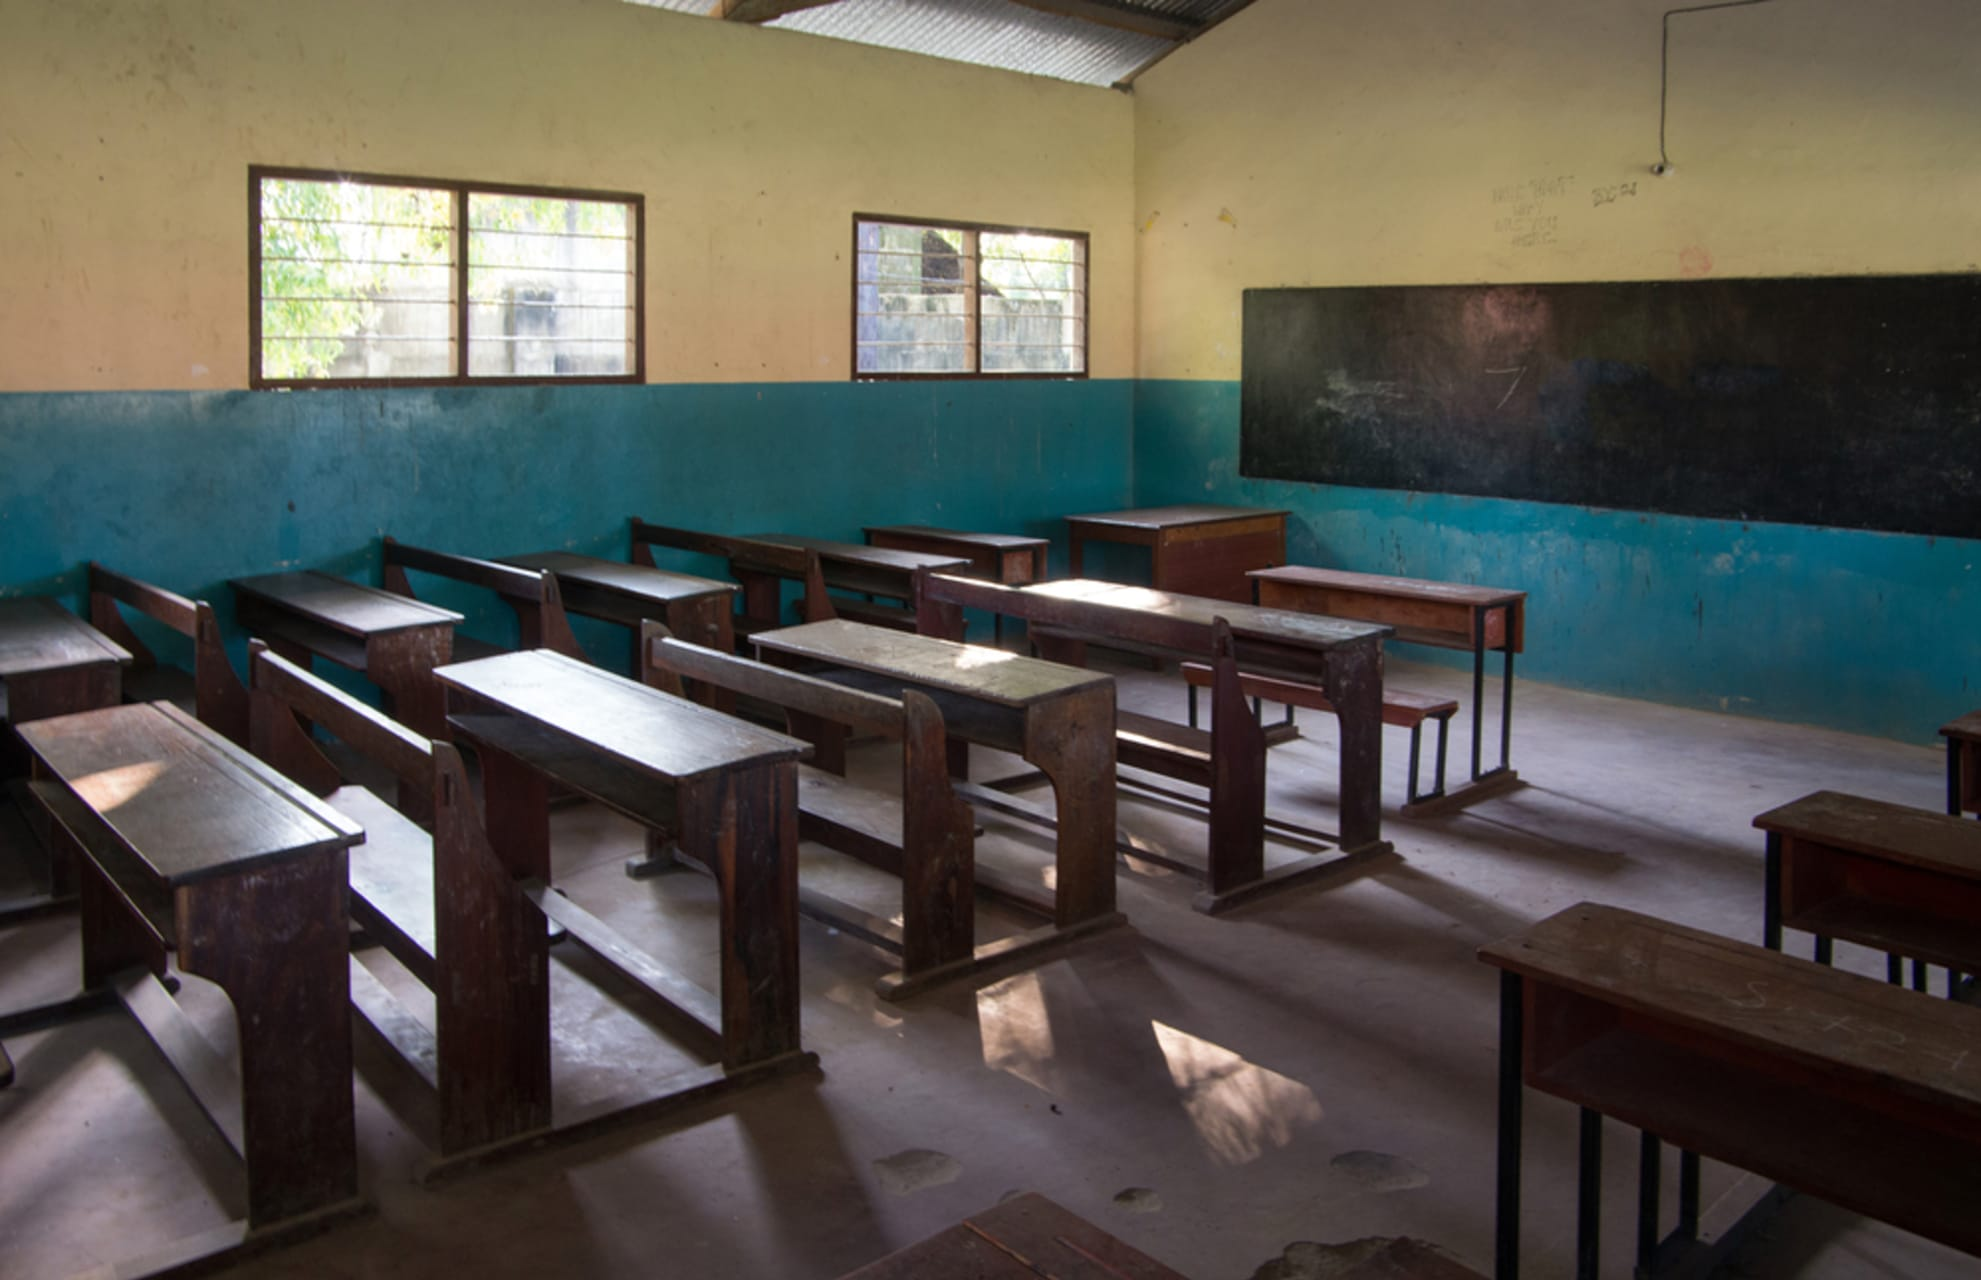 Mbour - Public Education in Senegal: The Primary School in My Village